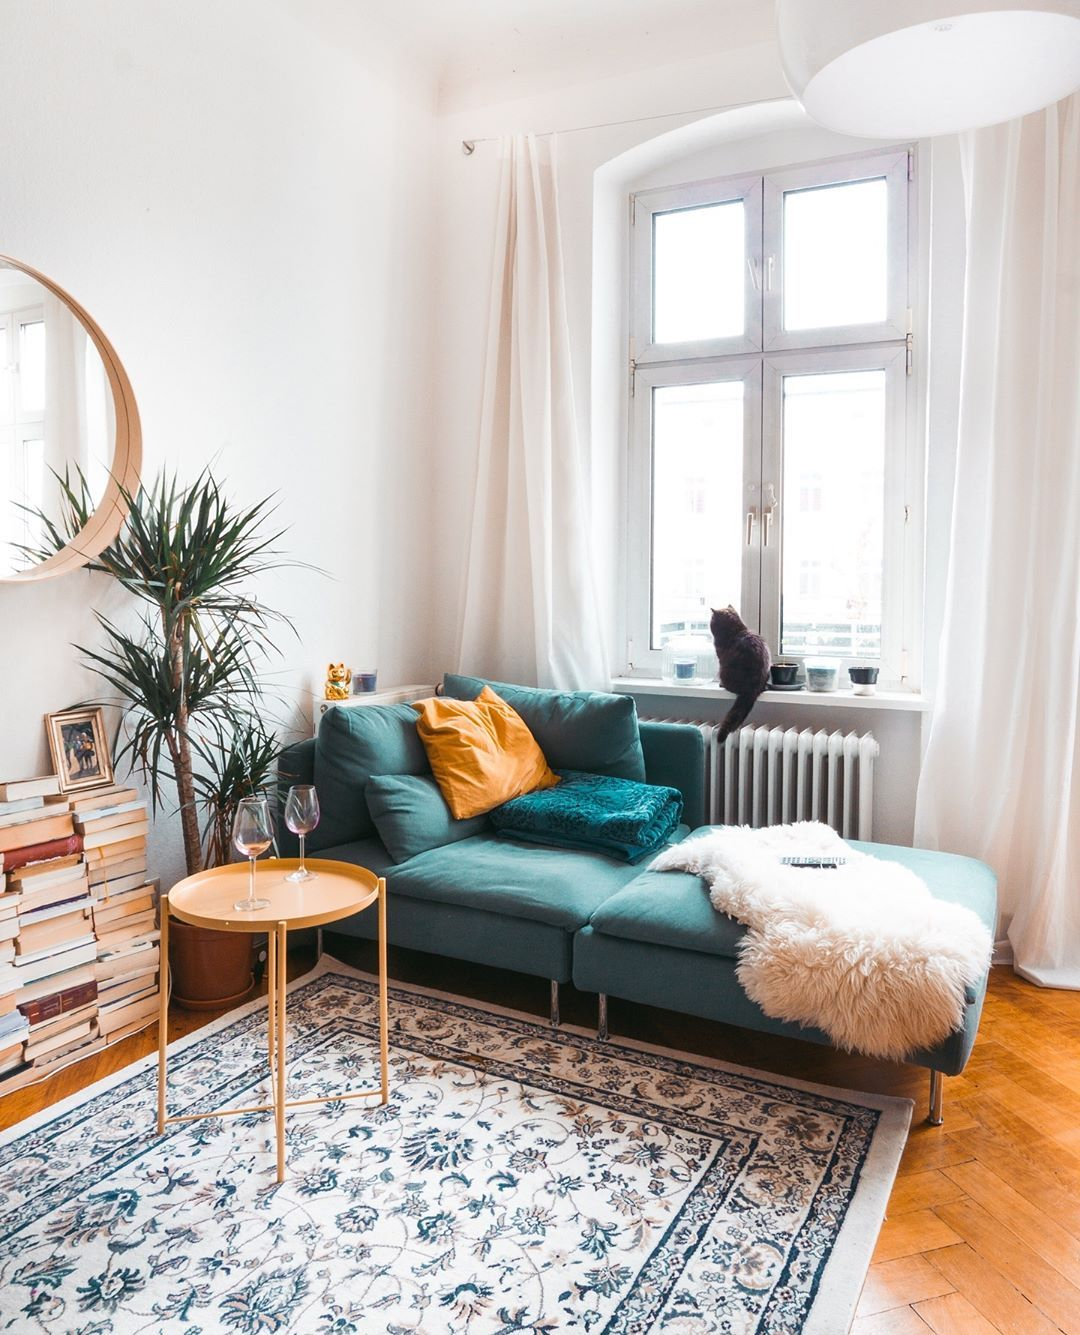 living room, wooden floor, white wall, green lounge chair, wooden tray side table, wooden mirror